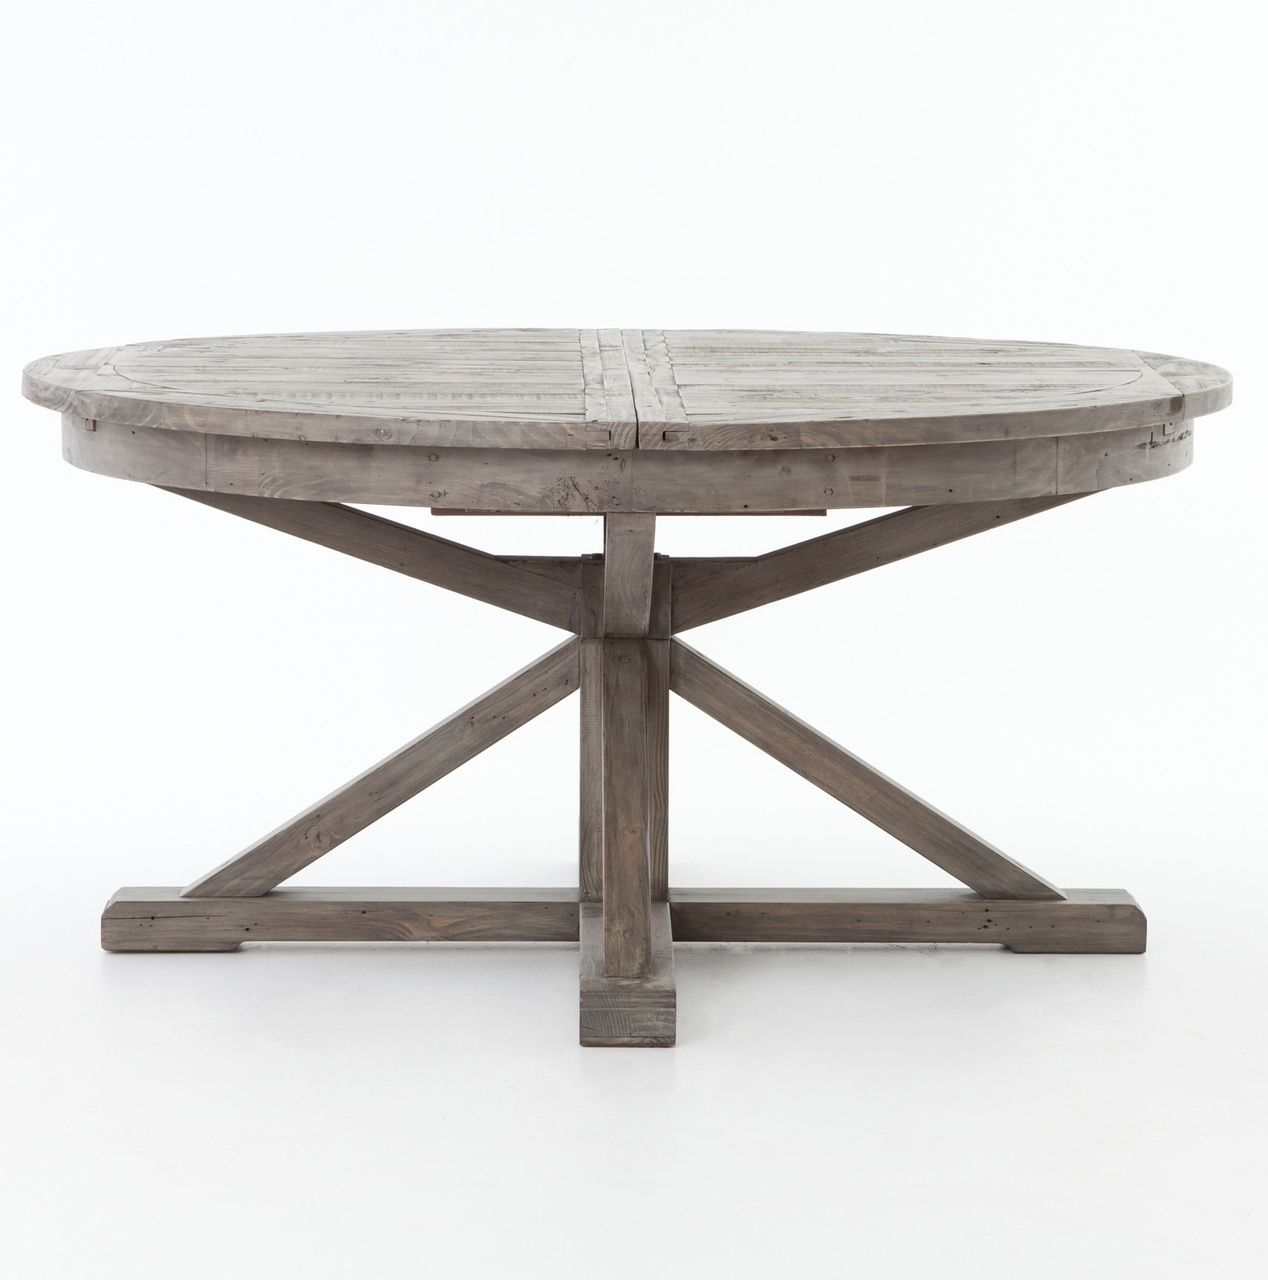 Cintra Reclaimed Wood Extending Round Dining Table 63 Expandable Round Dining Table Wood Dining Room Table Round Pedestal Dining Expandable round pedestal dining table